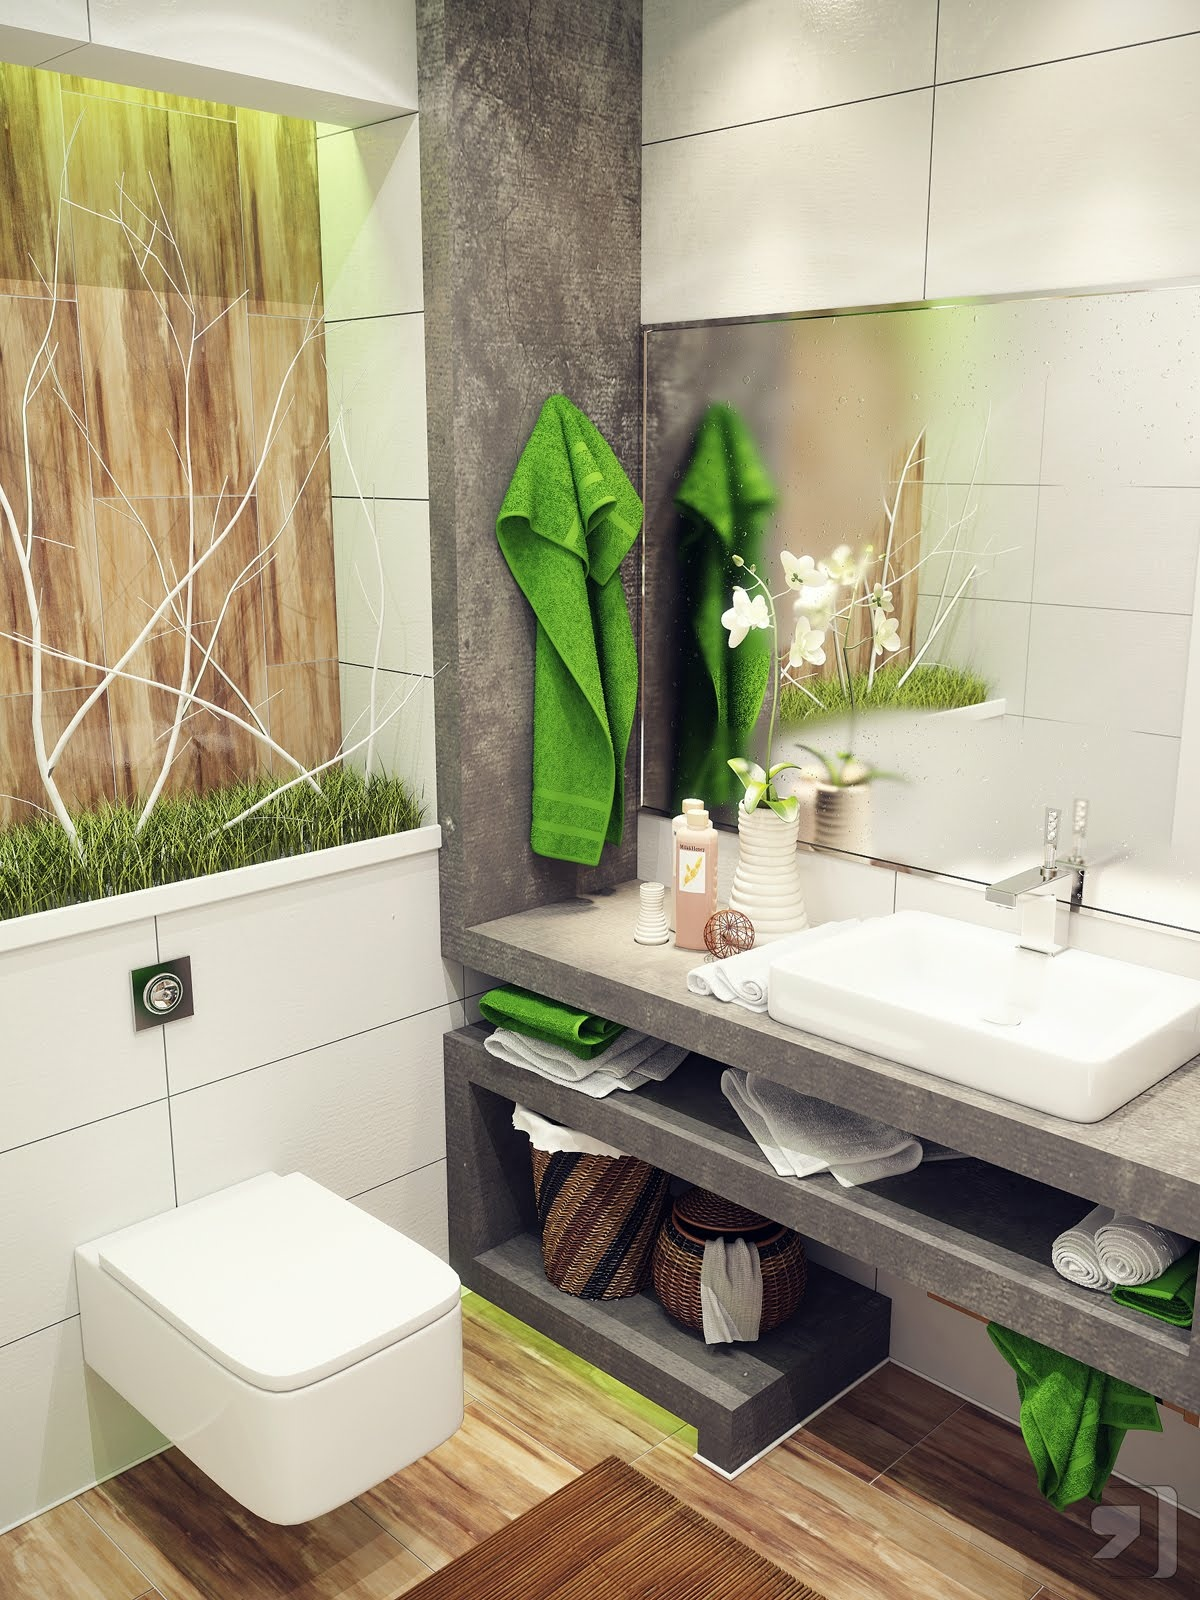 Fashion week Bathrooms green designs for lady